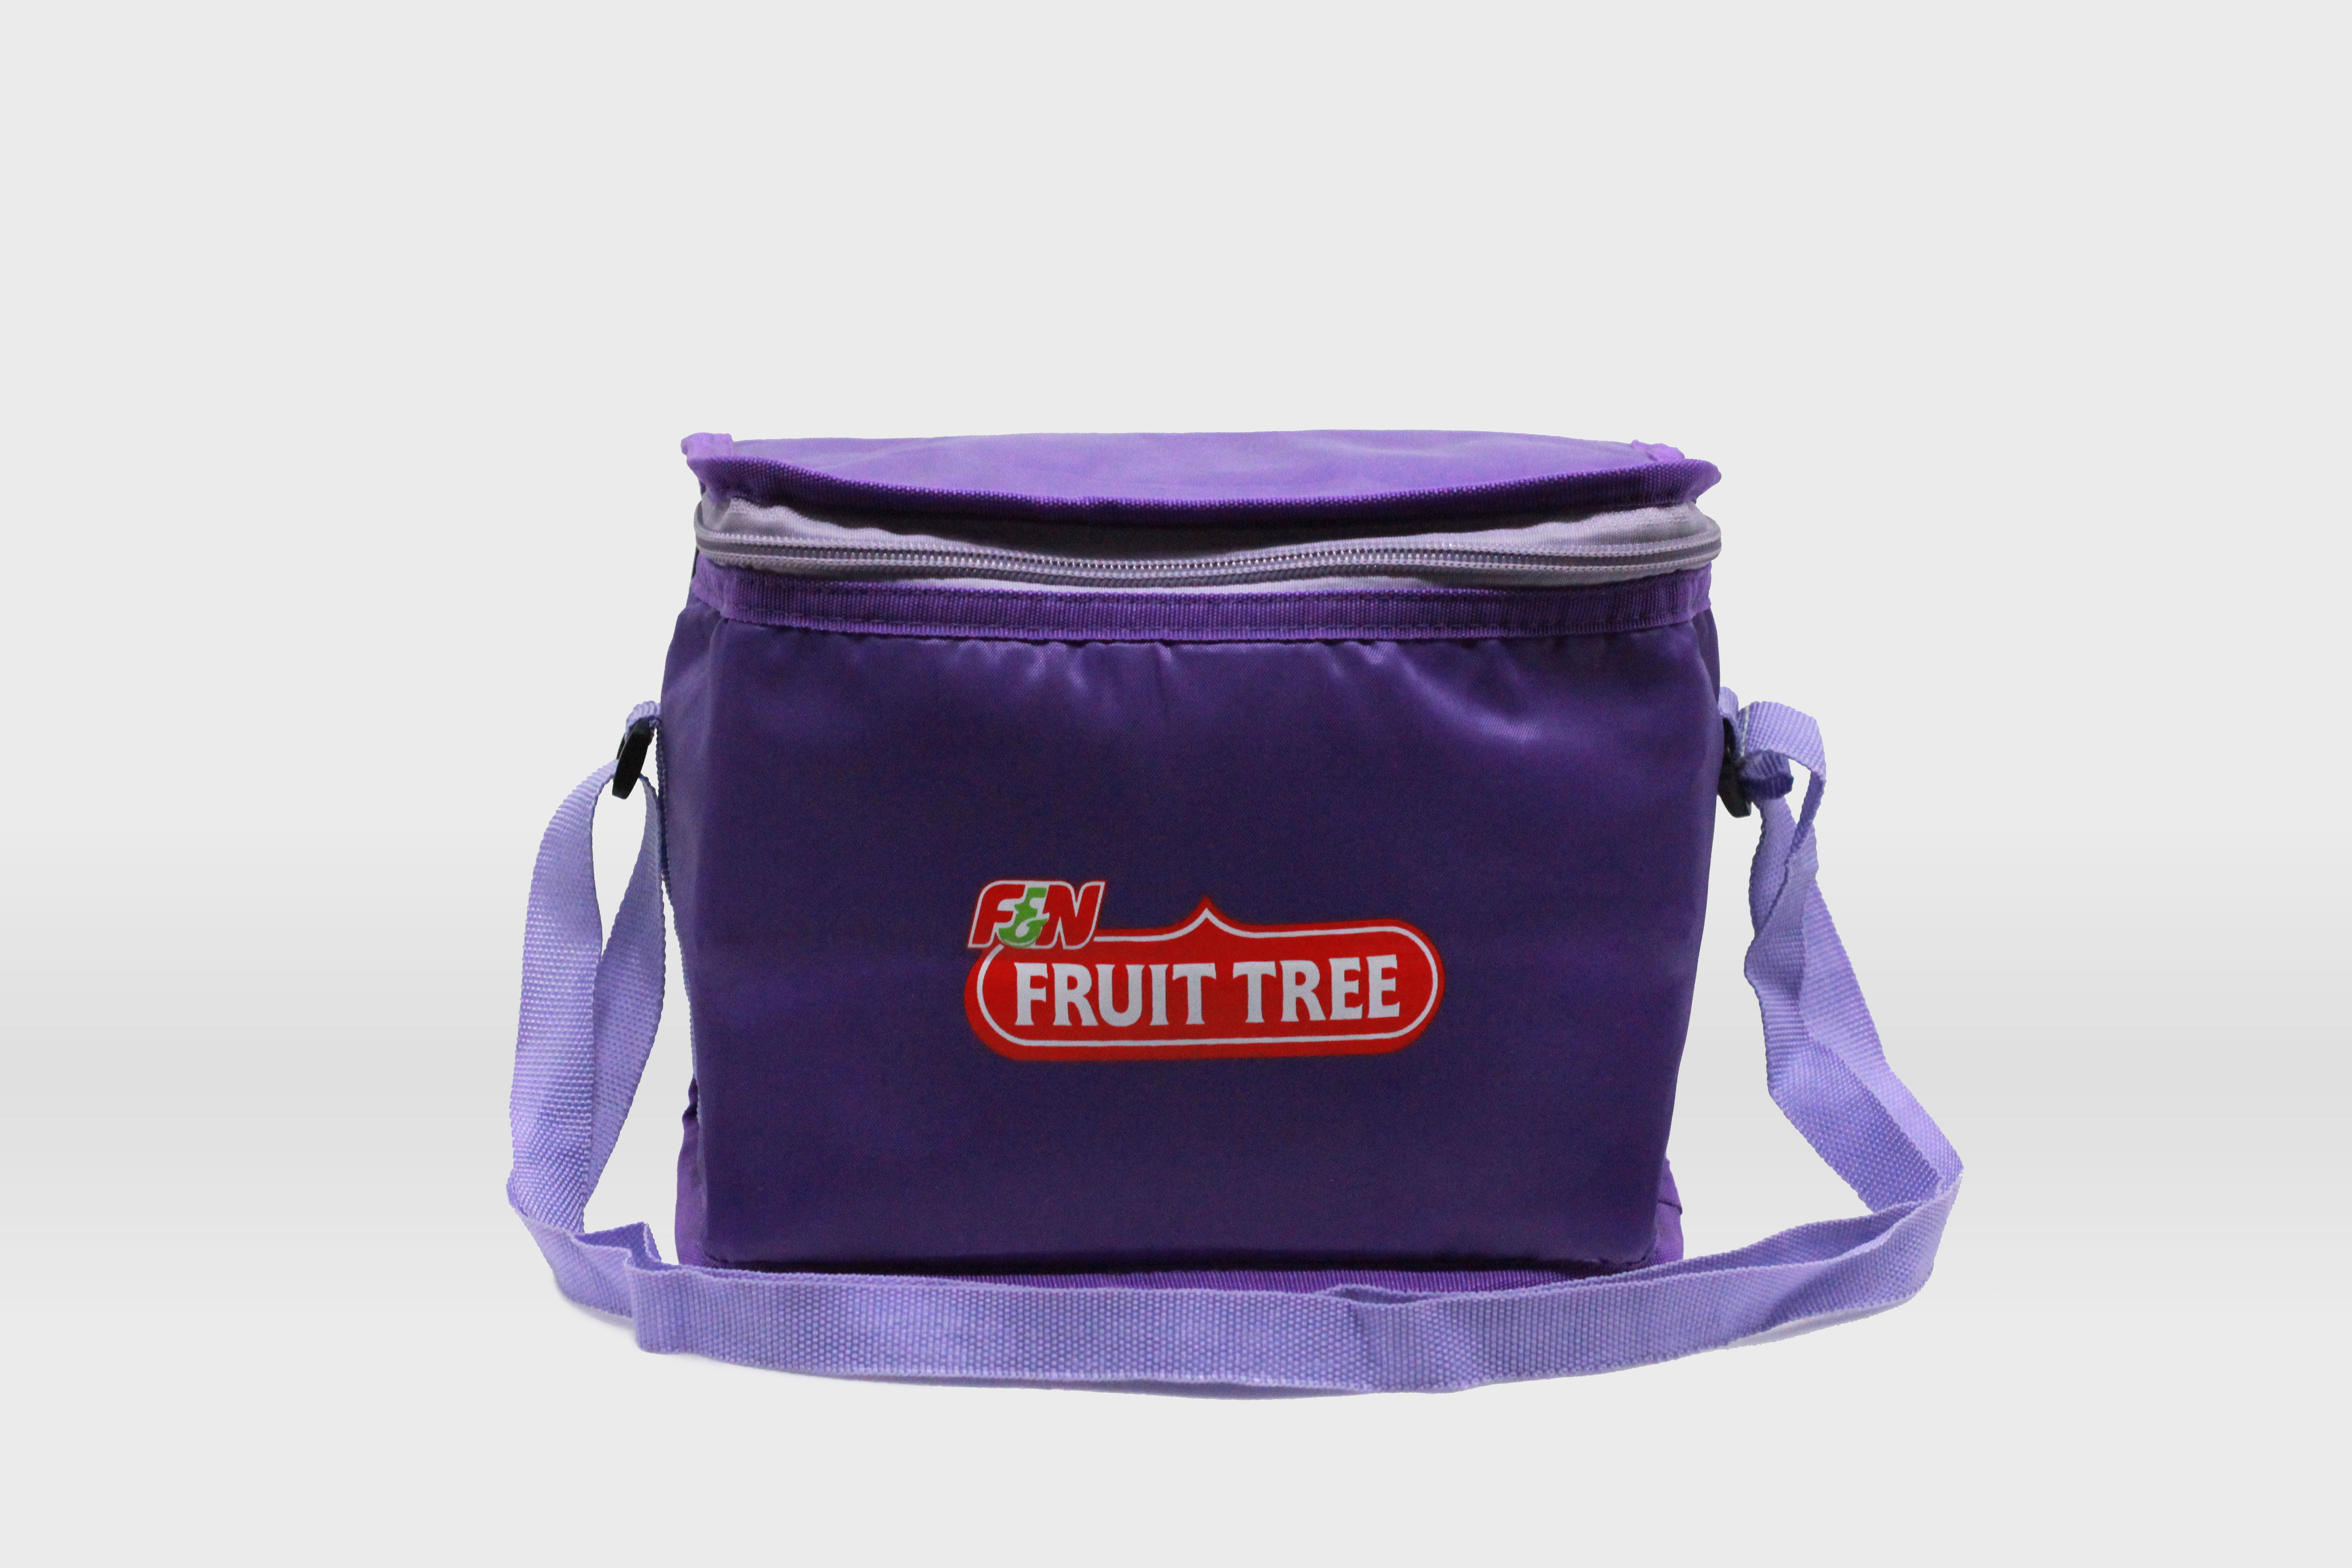 F&N Fruit Tree